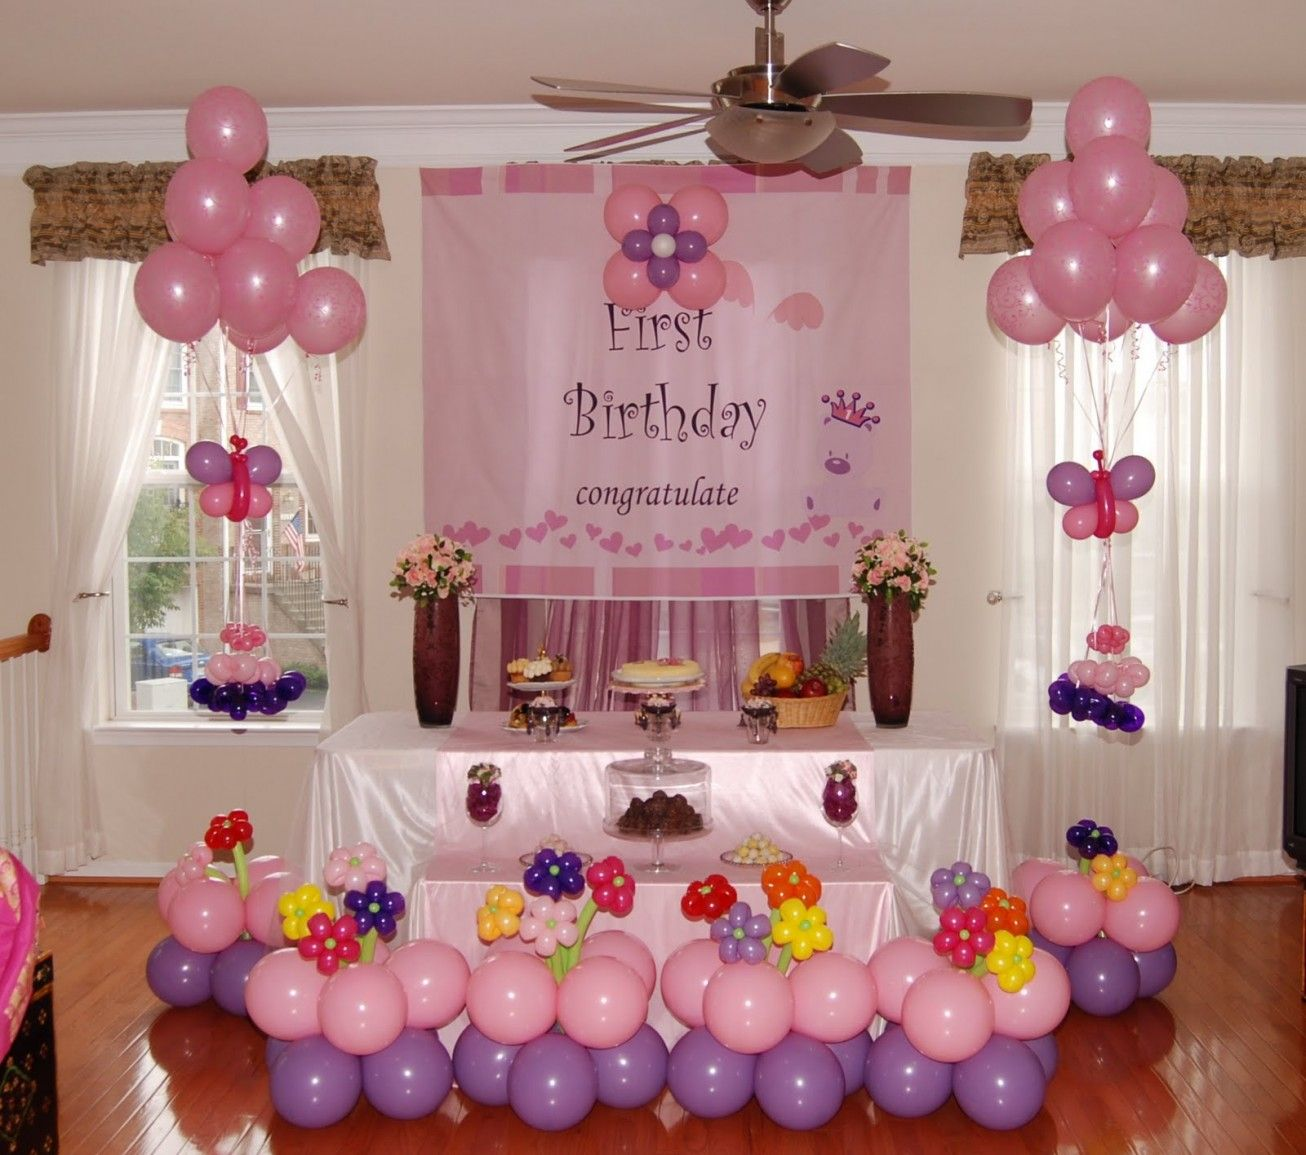 Simple birthday table decoration ideas - Various Choice Birthday Decoration For The Best Birthday Decoration Ideas Glamorous Birthday Decoration With Table